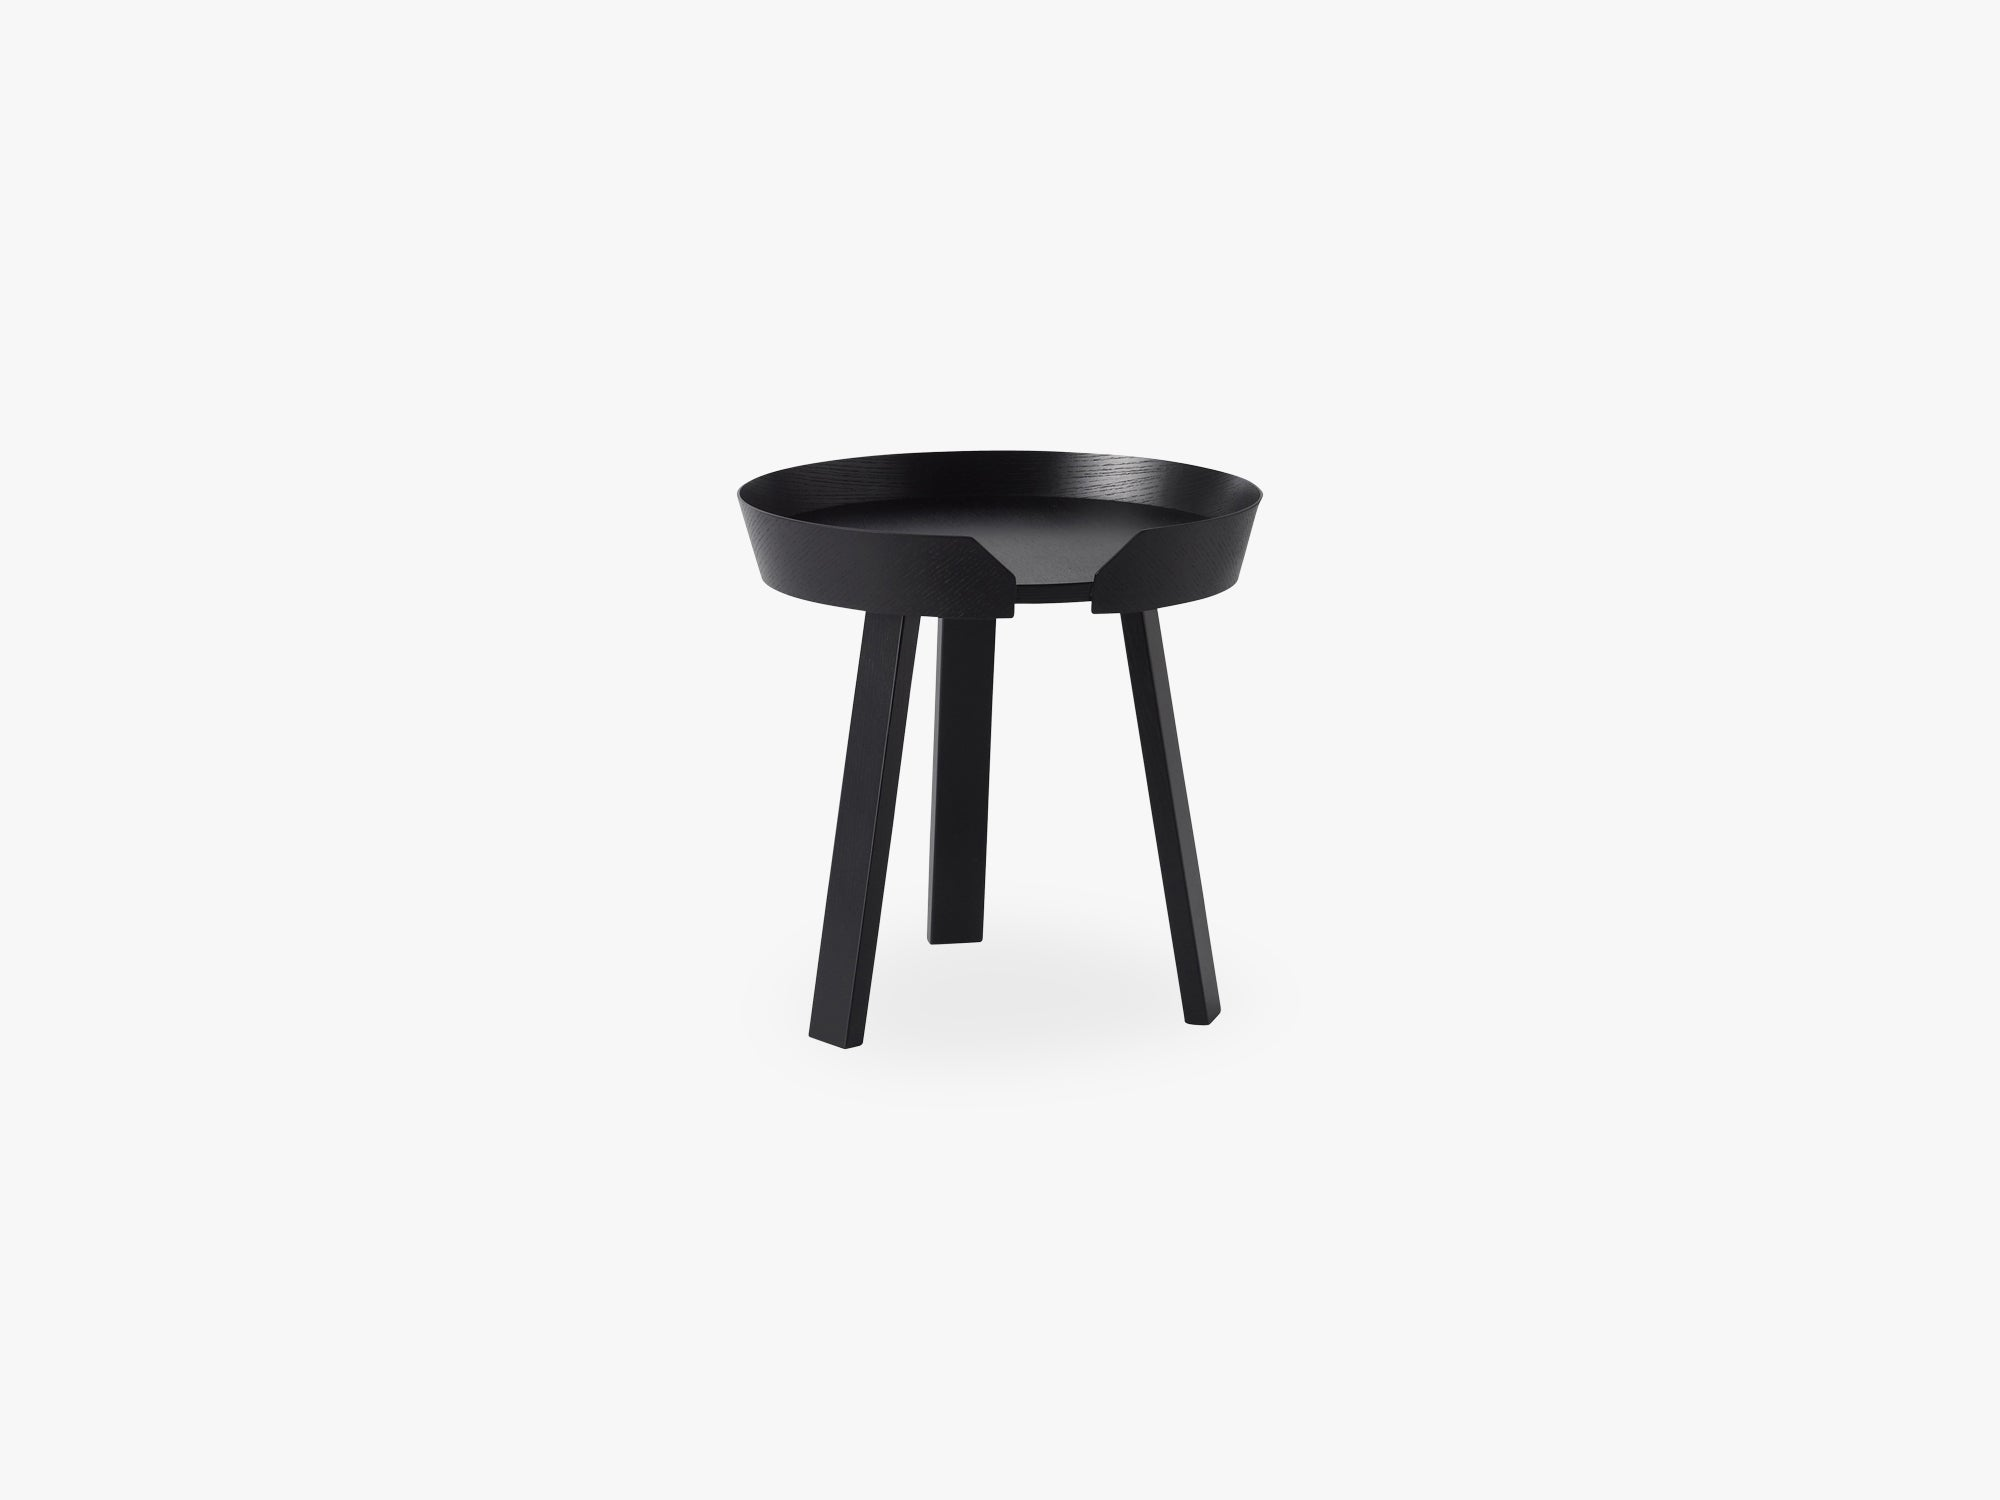 Around Coffee Table - Small, Black fra Muuto